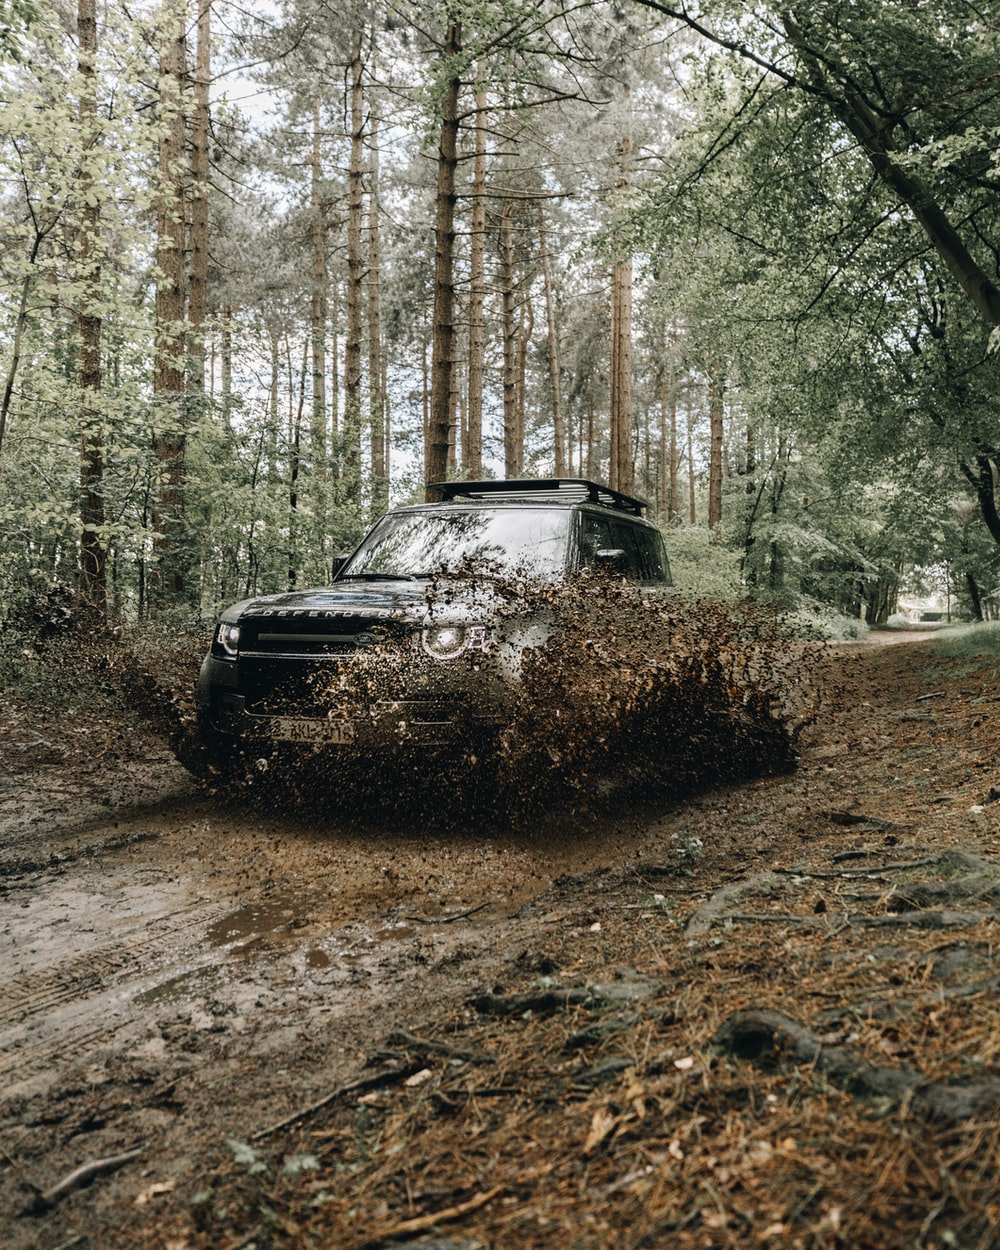 black car on dirt road in between trees during daytime